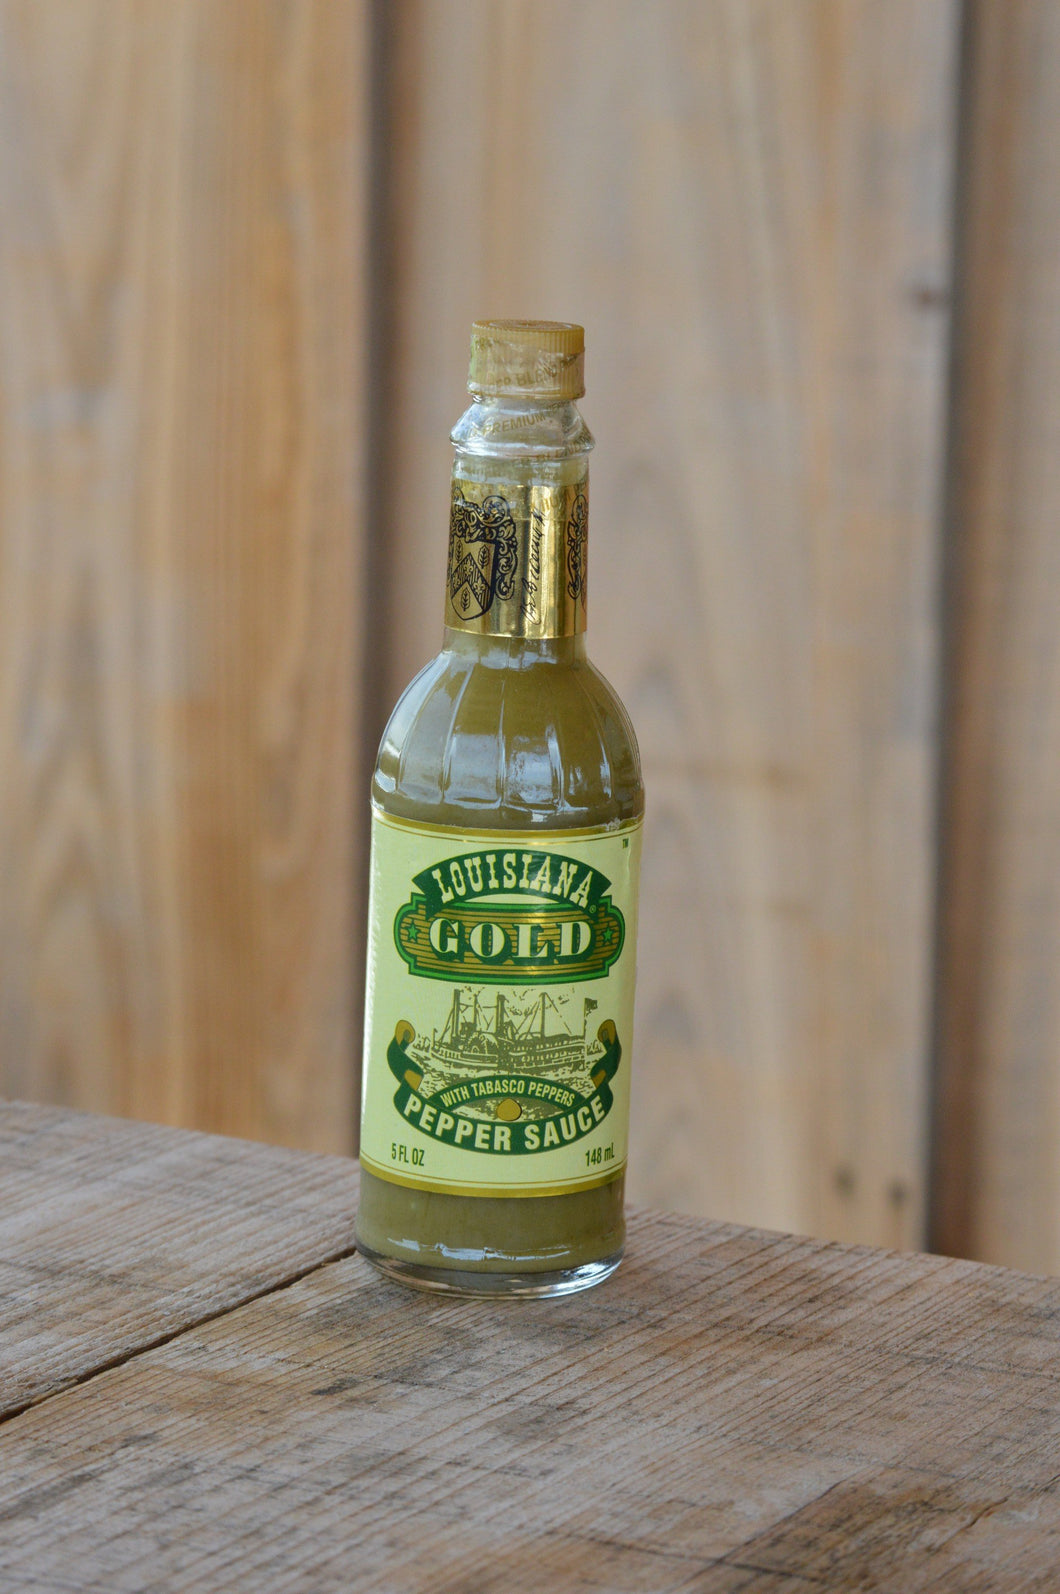 Louisiana Gold Green Pepper Sauce